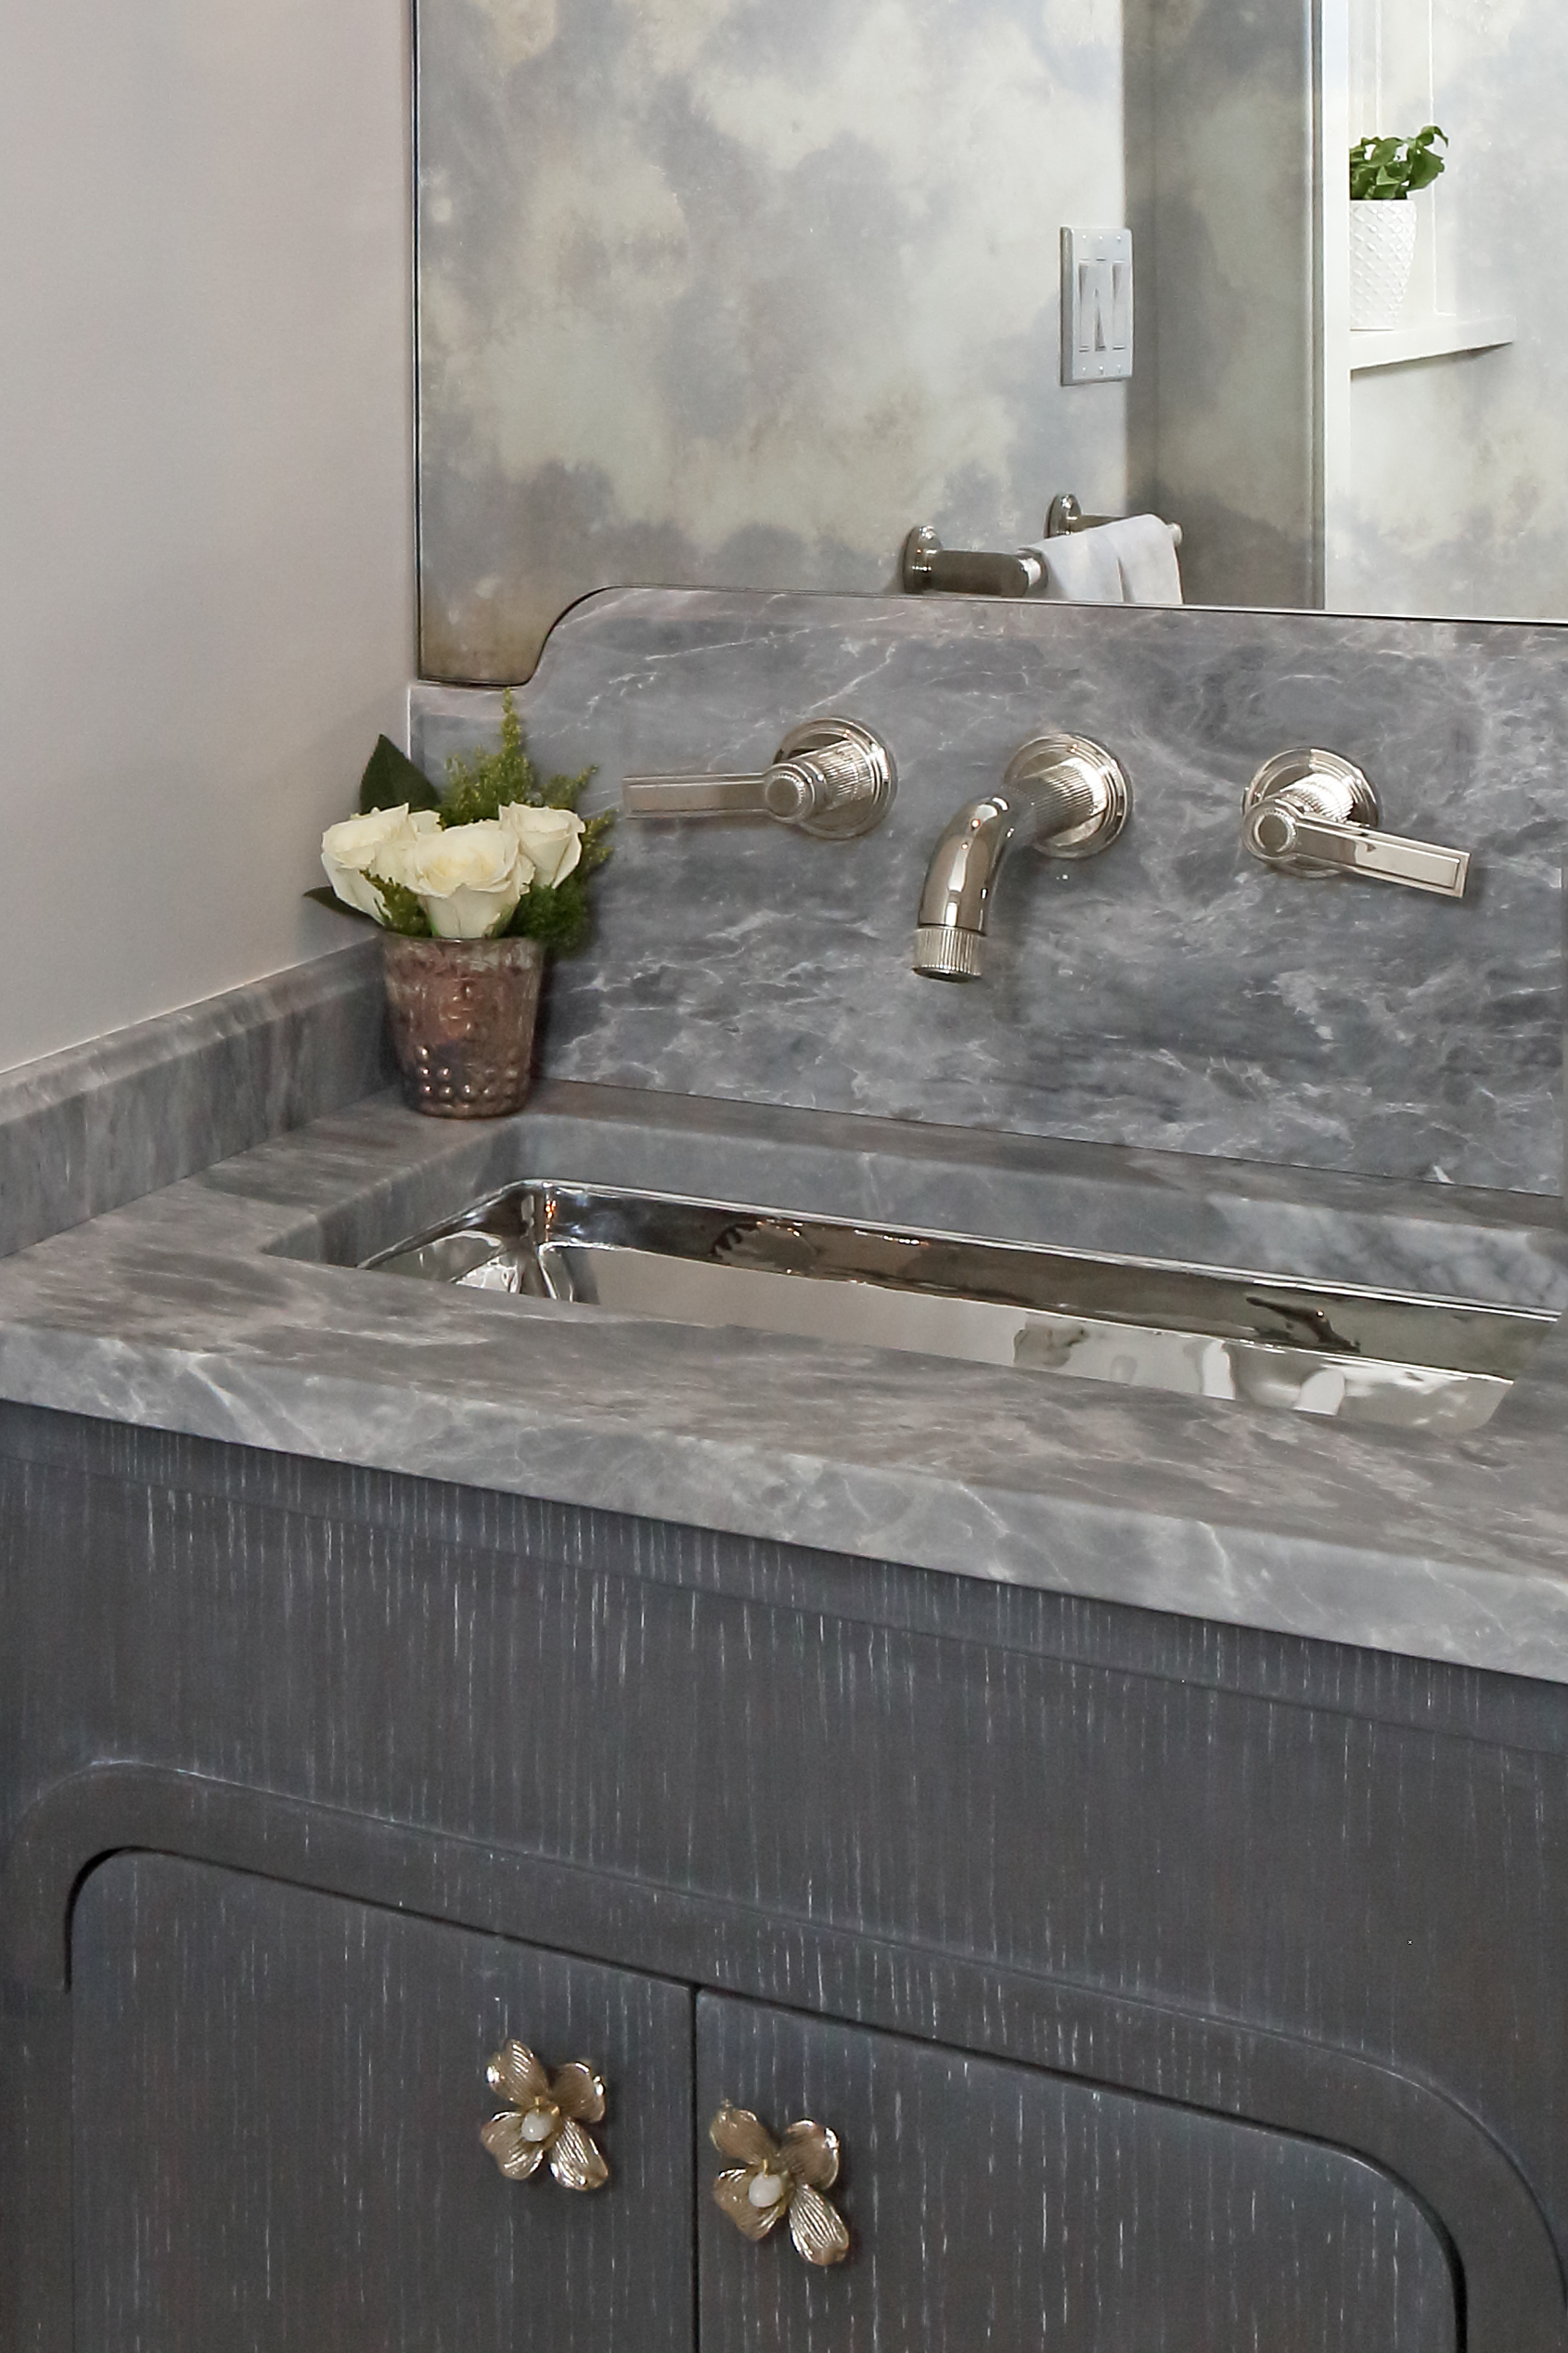 KAM DESIGN_Powder Room_Larchmont_2018_557a.jpg